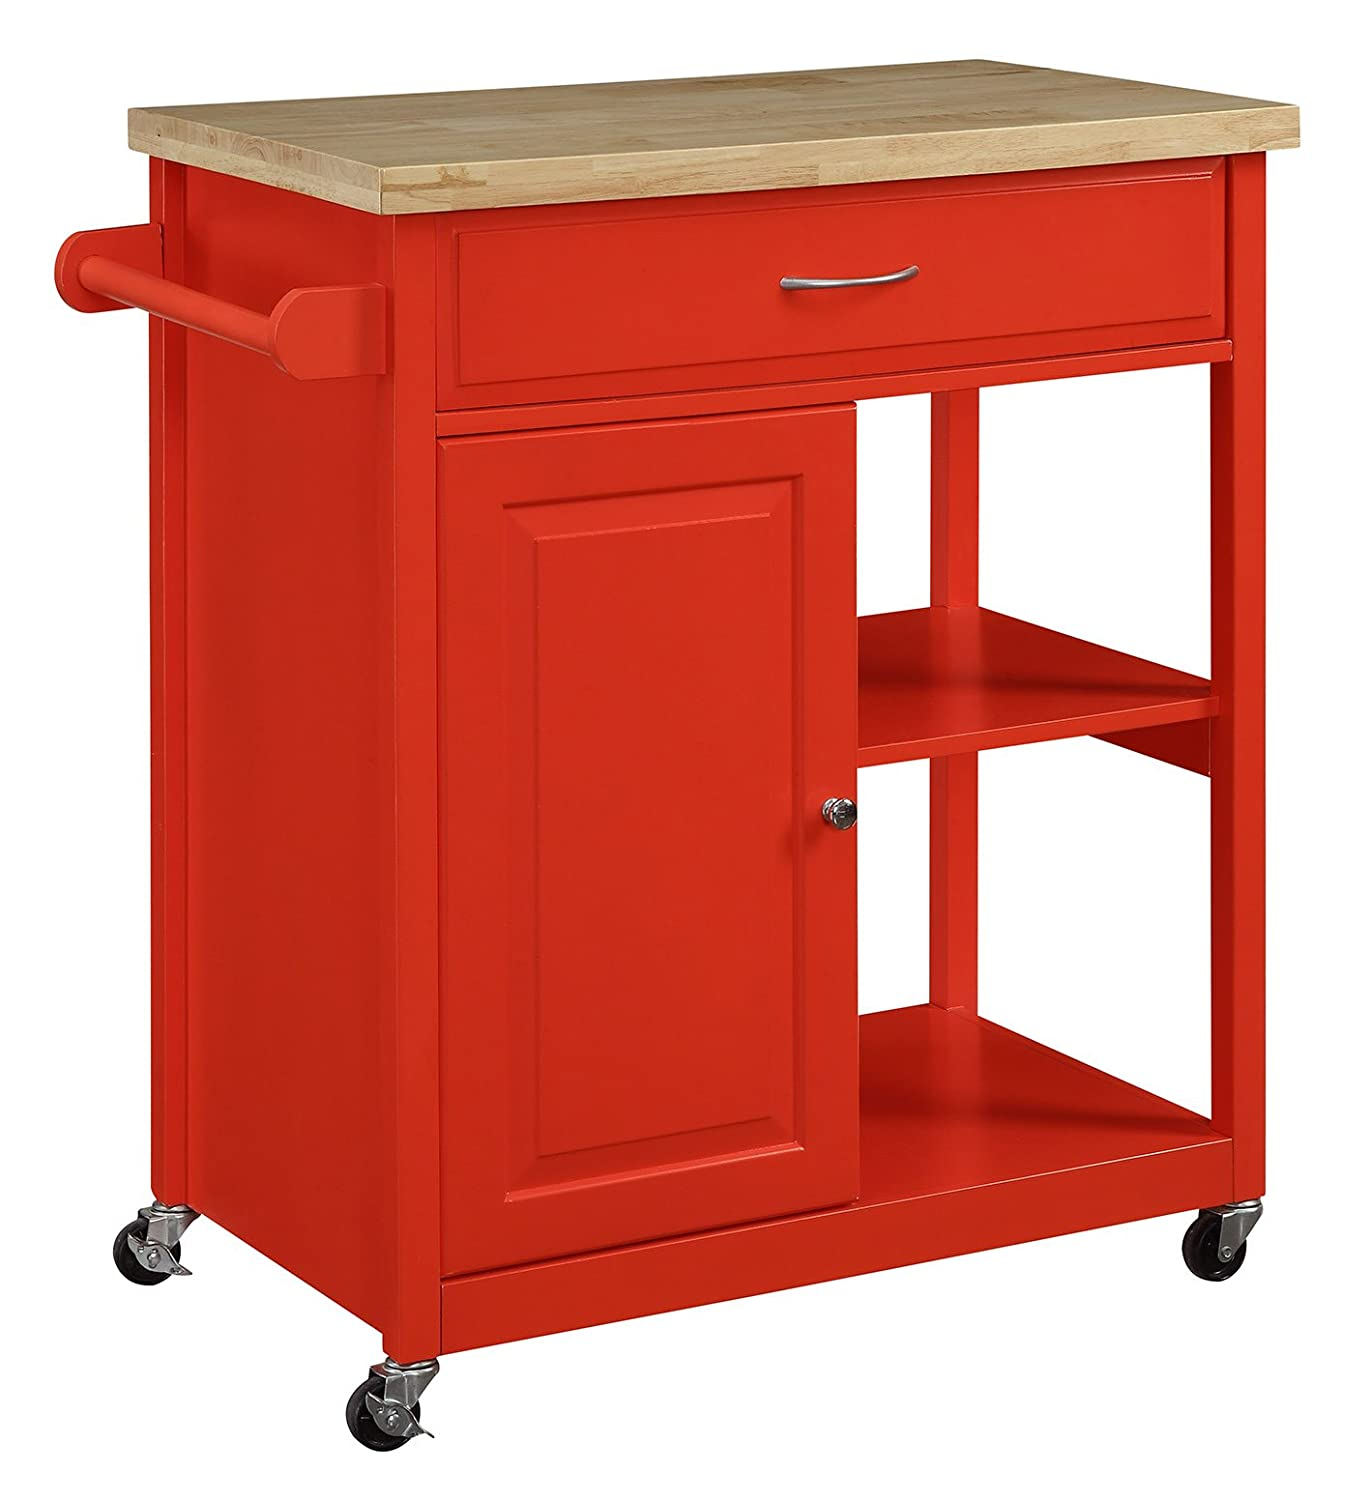 Red Kitchen Carts Under 100 00 Red Kitchen Shelf Red Kitchen Chair Red Kitchen Cabinet Red